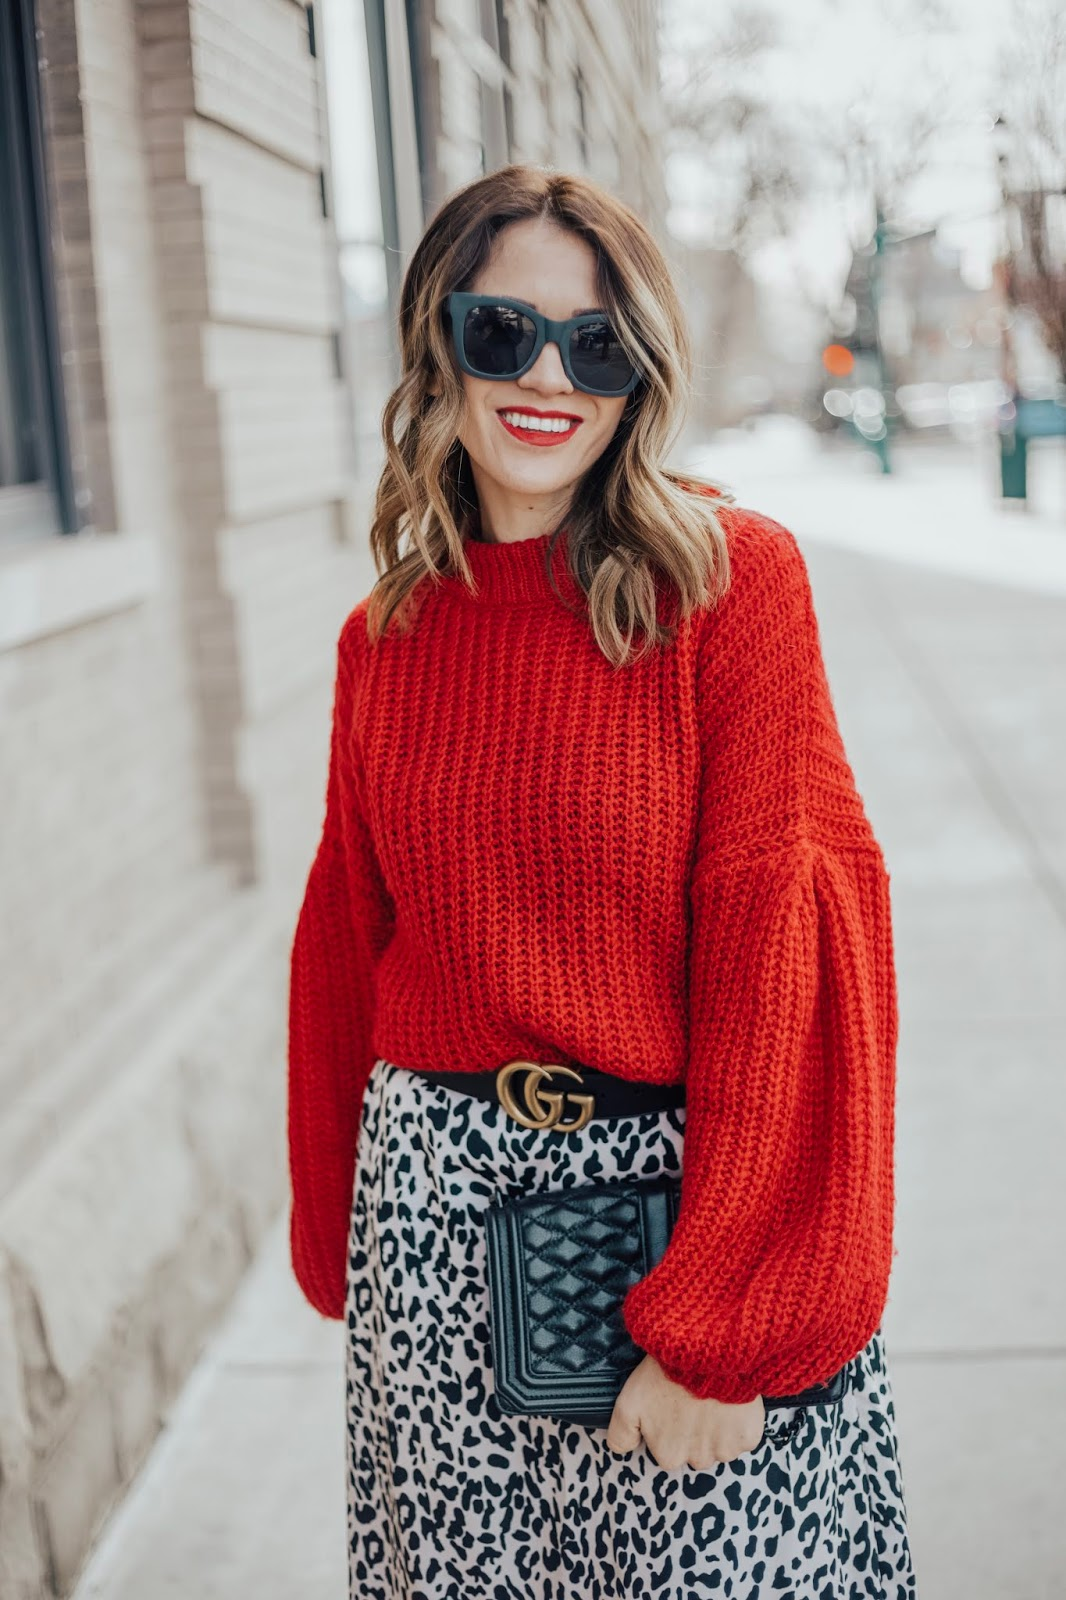 Leopard Skirt and Red Sweater